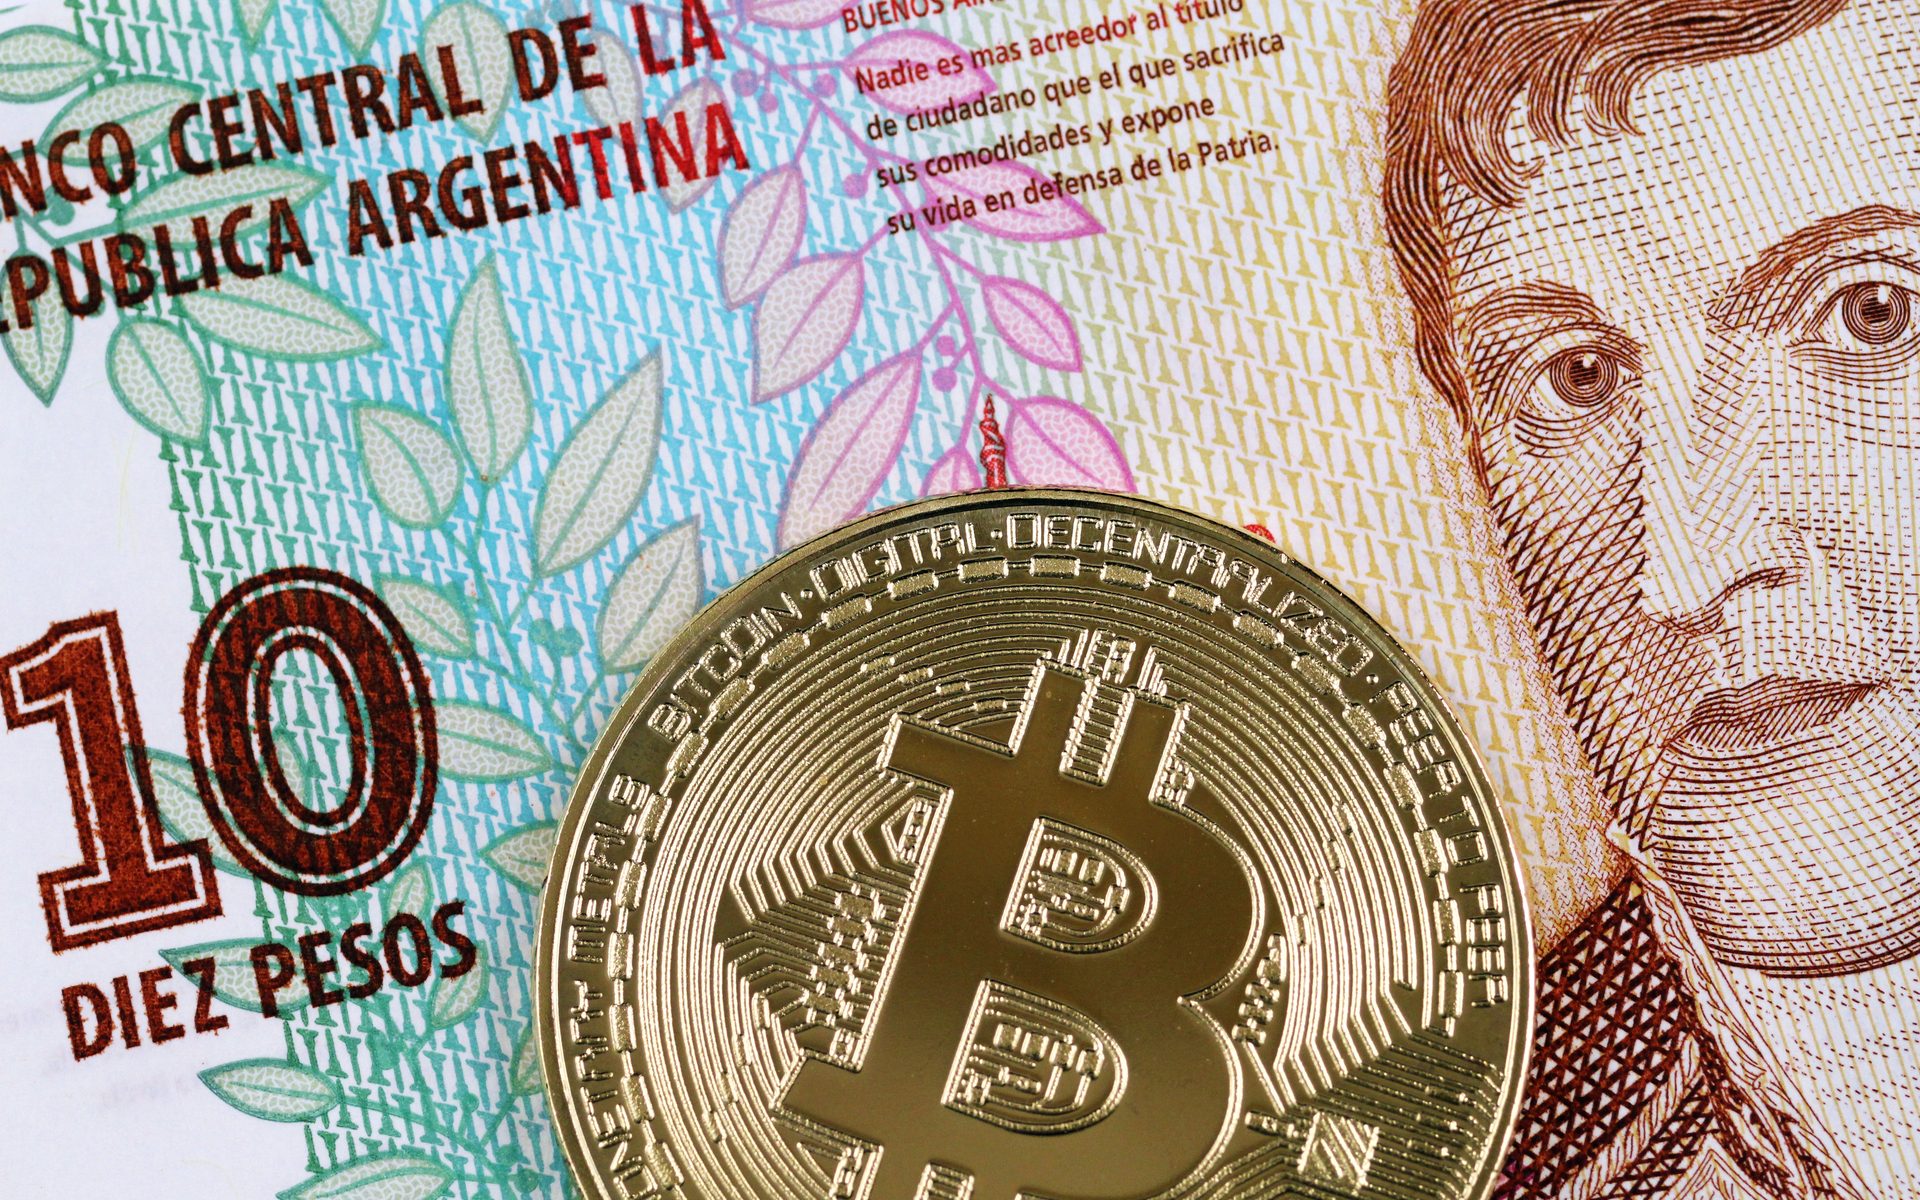 Argentina imposes exchange controls to calm markets+